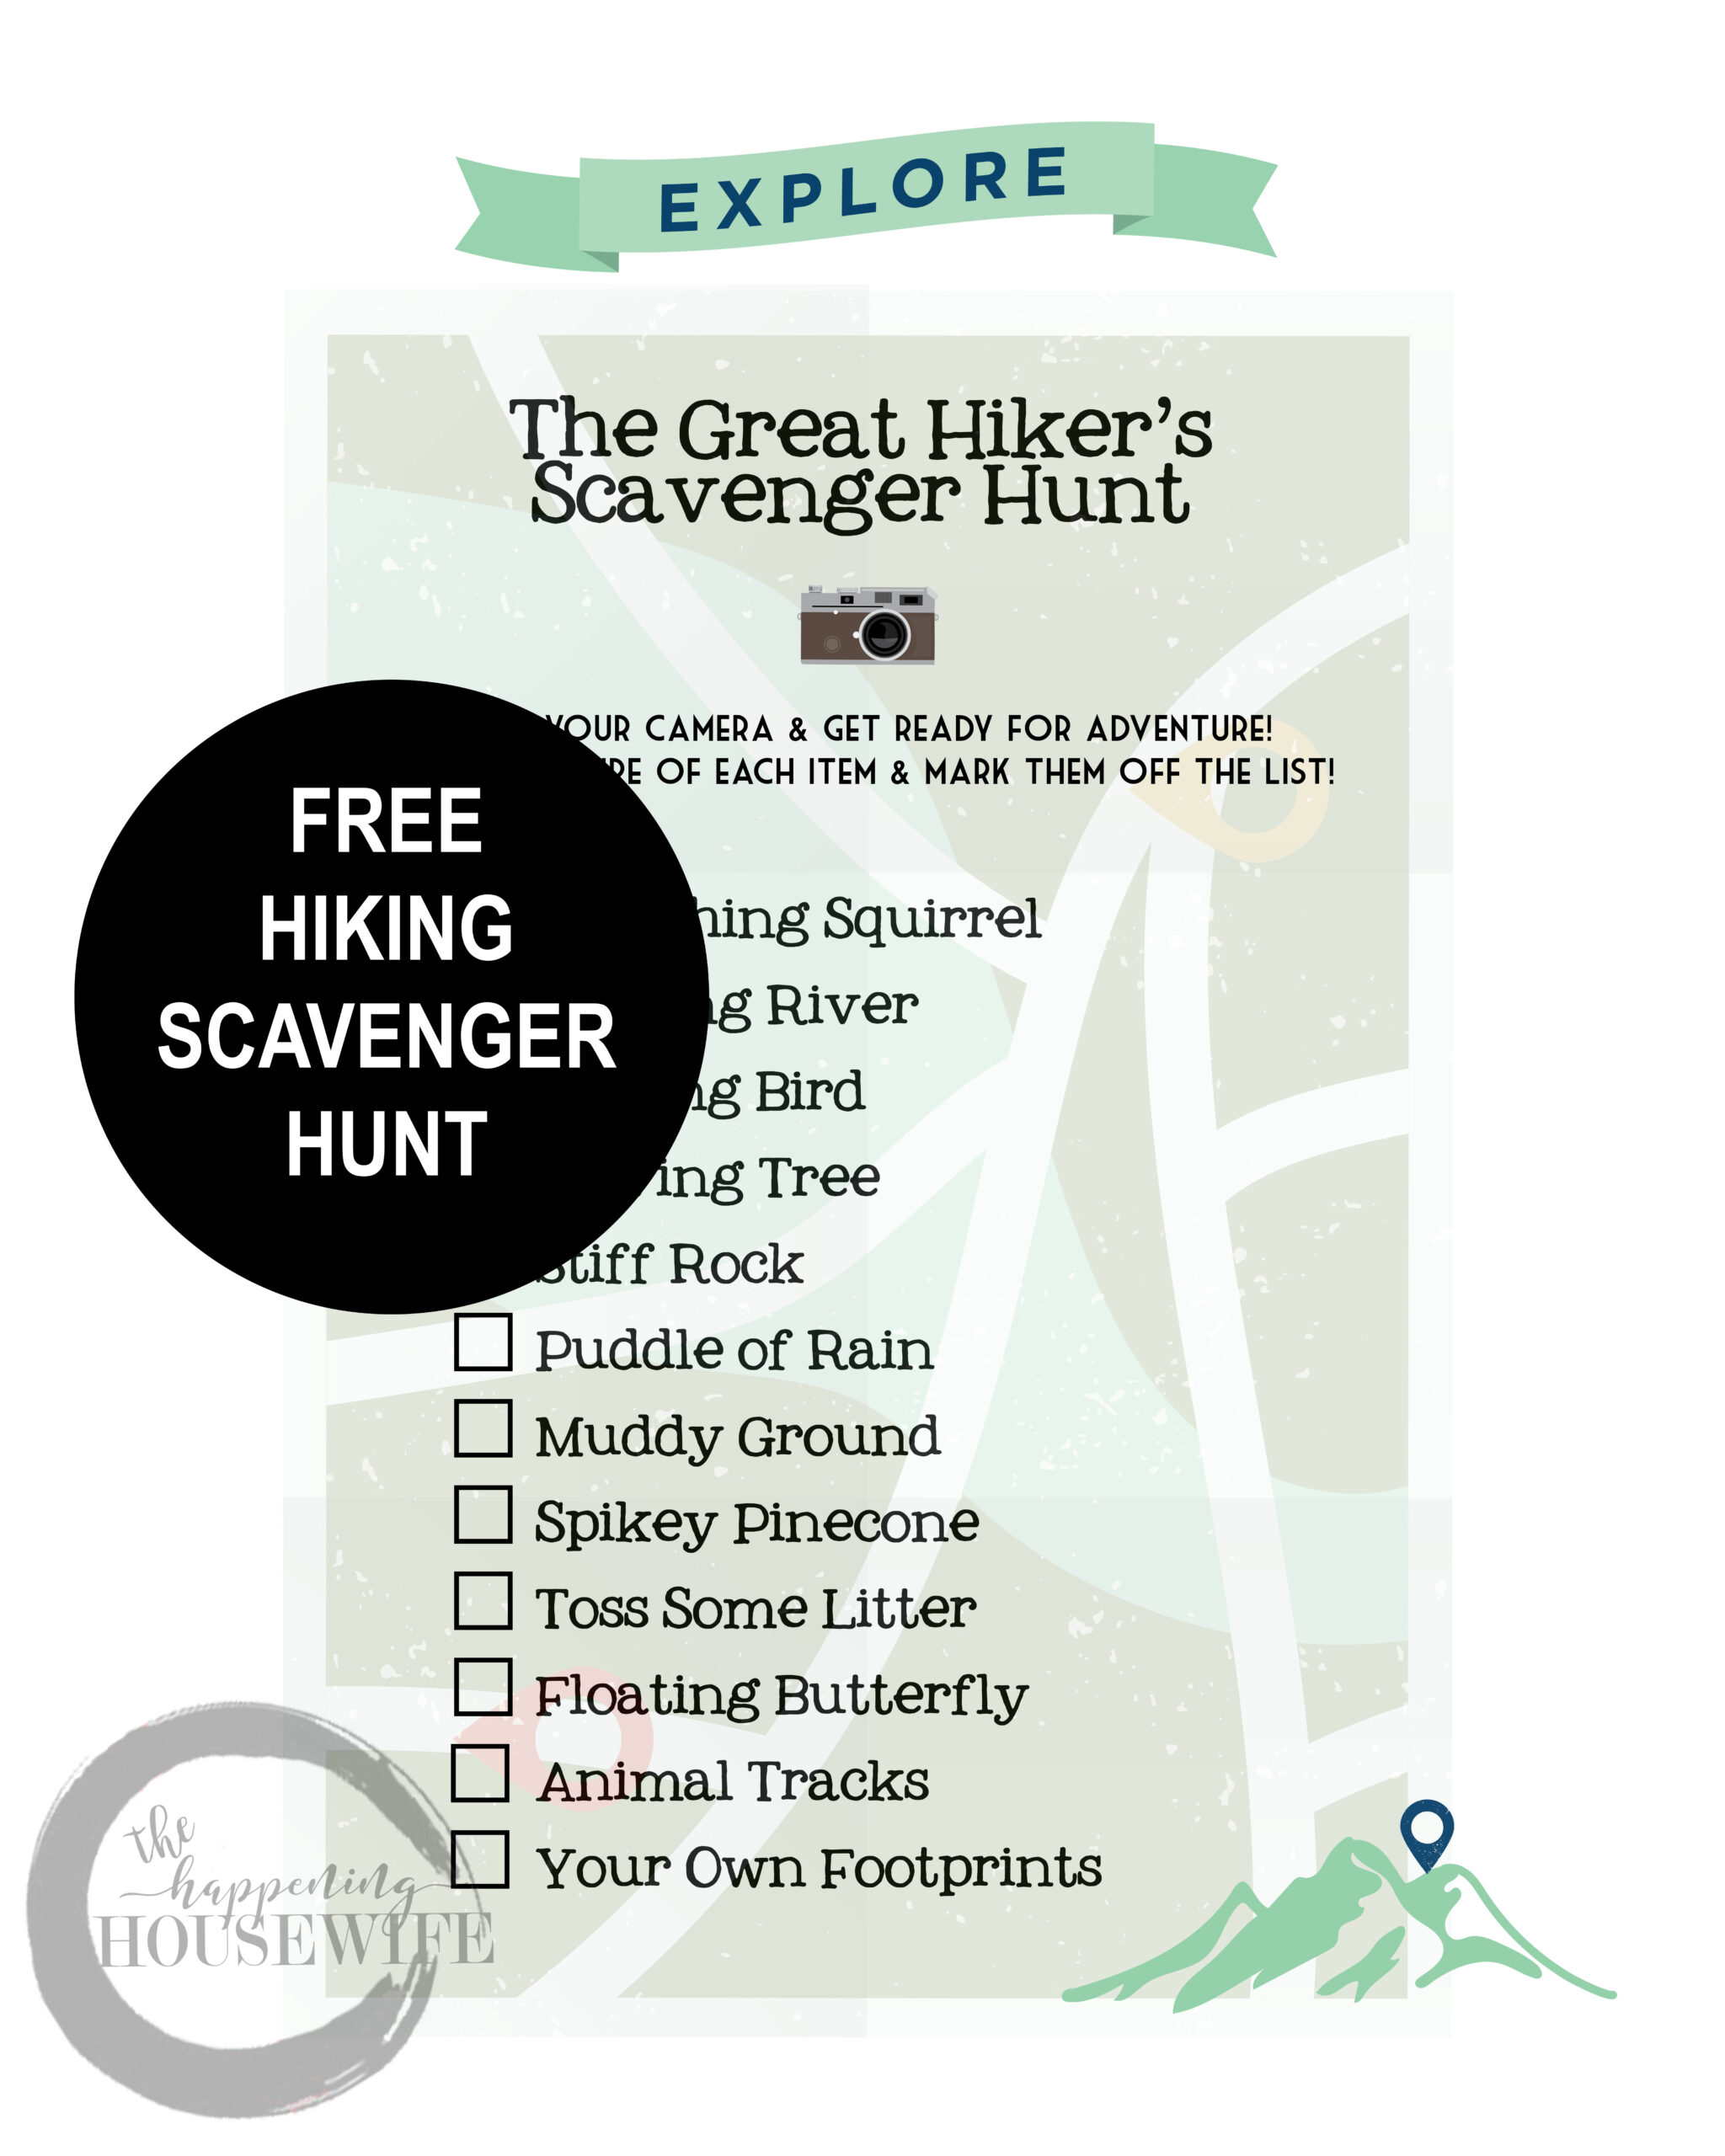 Hiking Scavenger Hunt